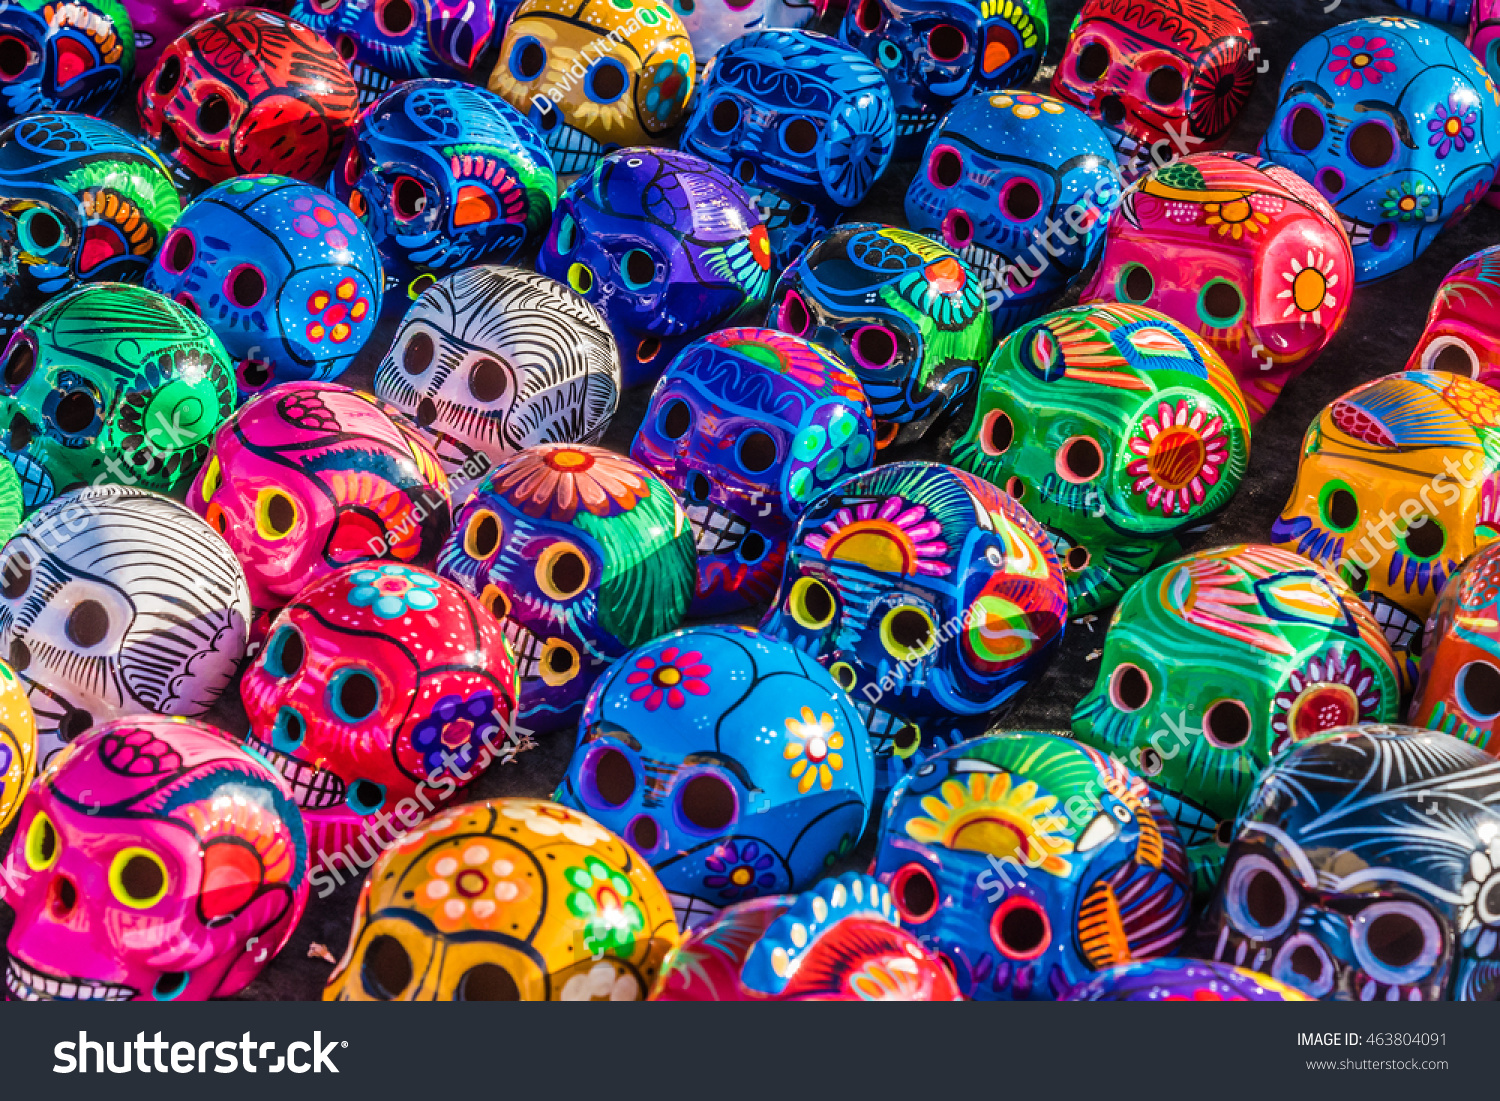 Mexican culture celebration colorful colourful traditional stock mexican culture celebration colorful colourful traditional mexicanhispanic ceramic pottery day of dailygadgetfo Choice Image